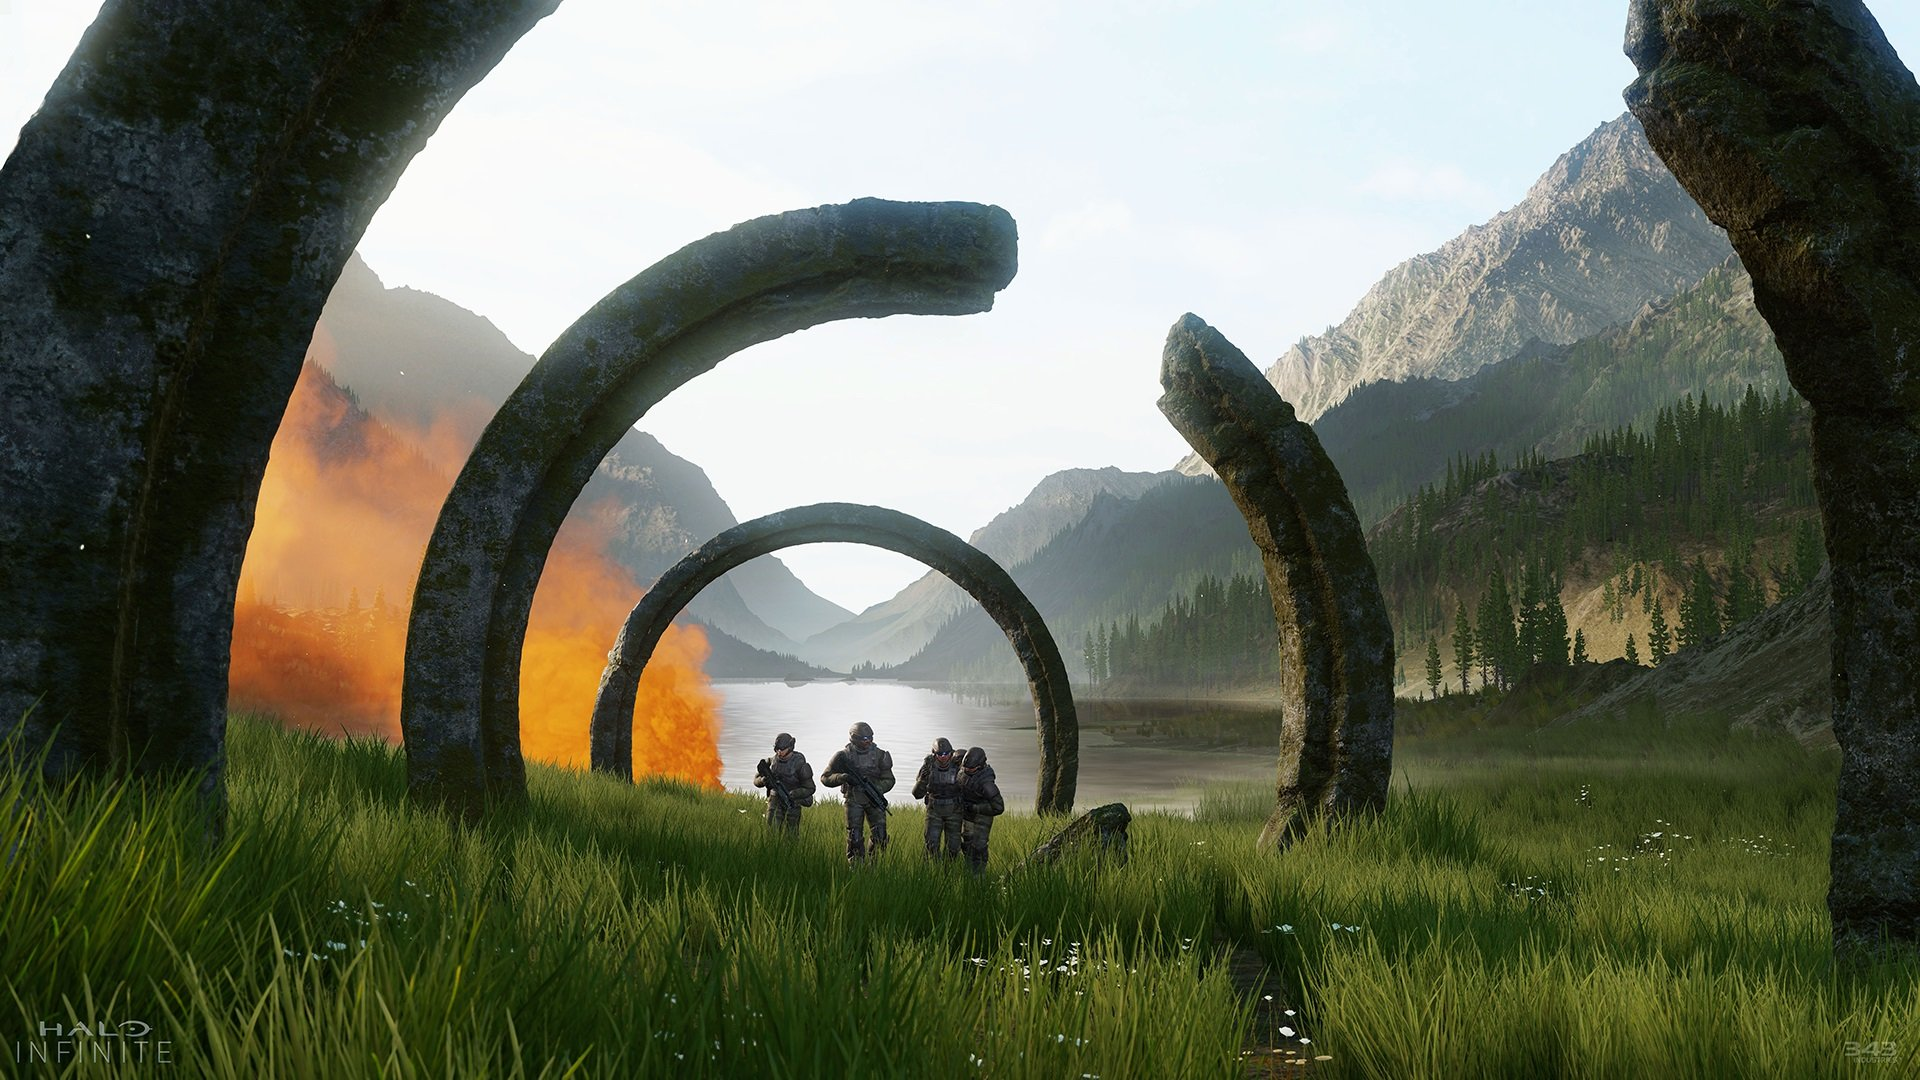 Halo Infinite from developer 343 Industries